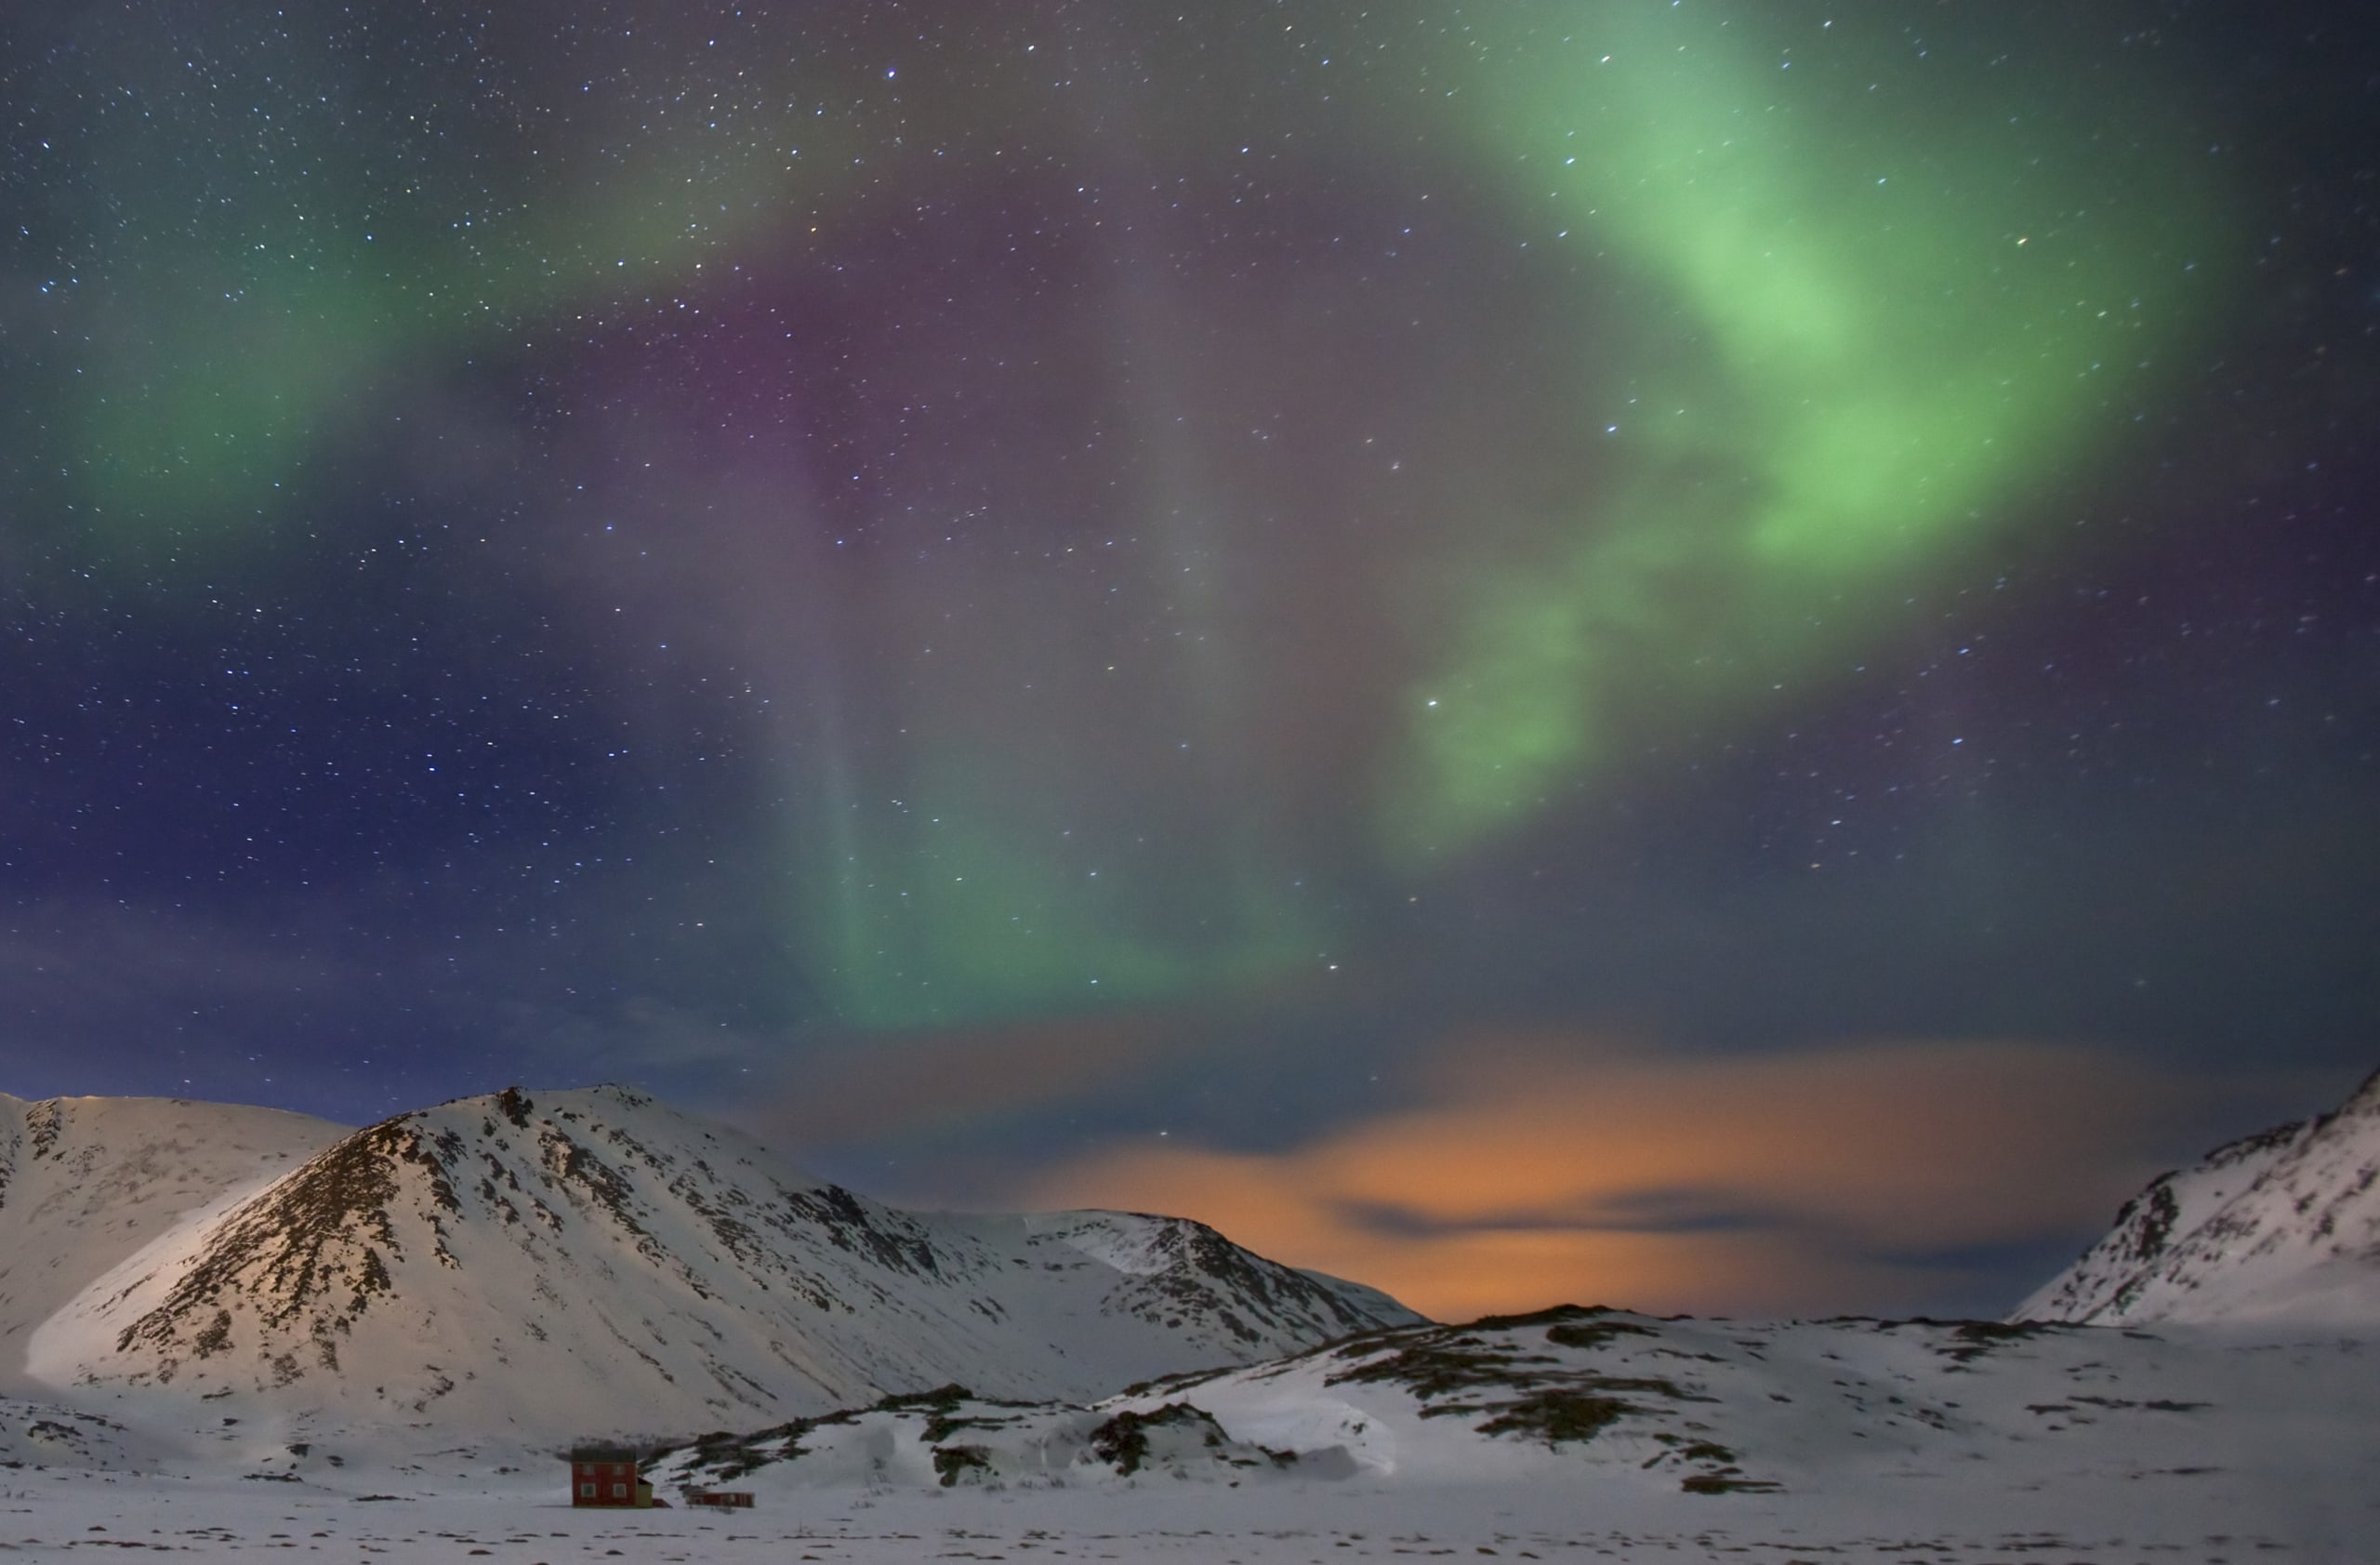 Northern Lights on the night sky